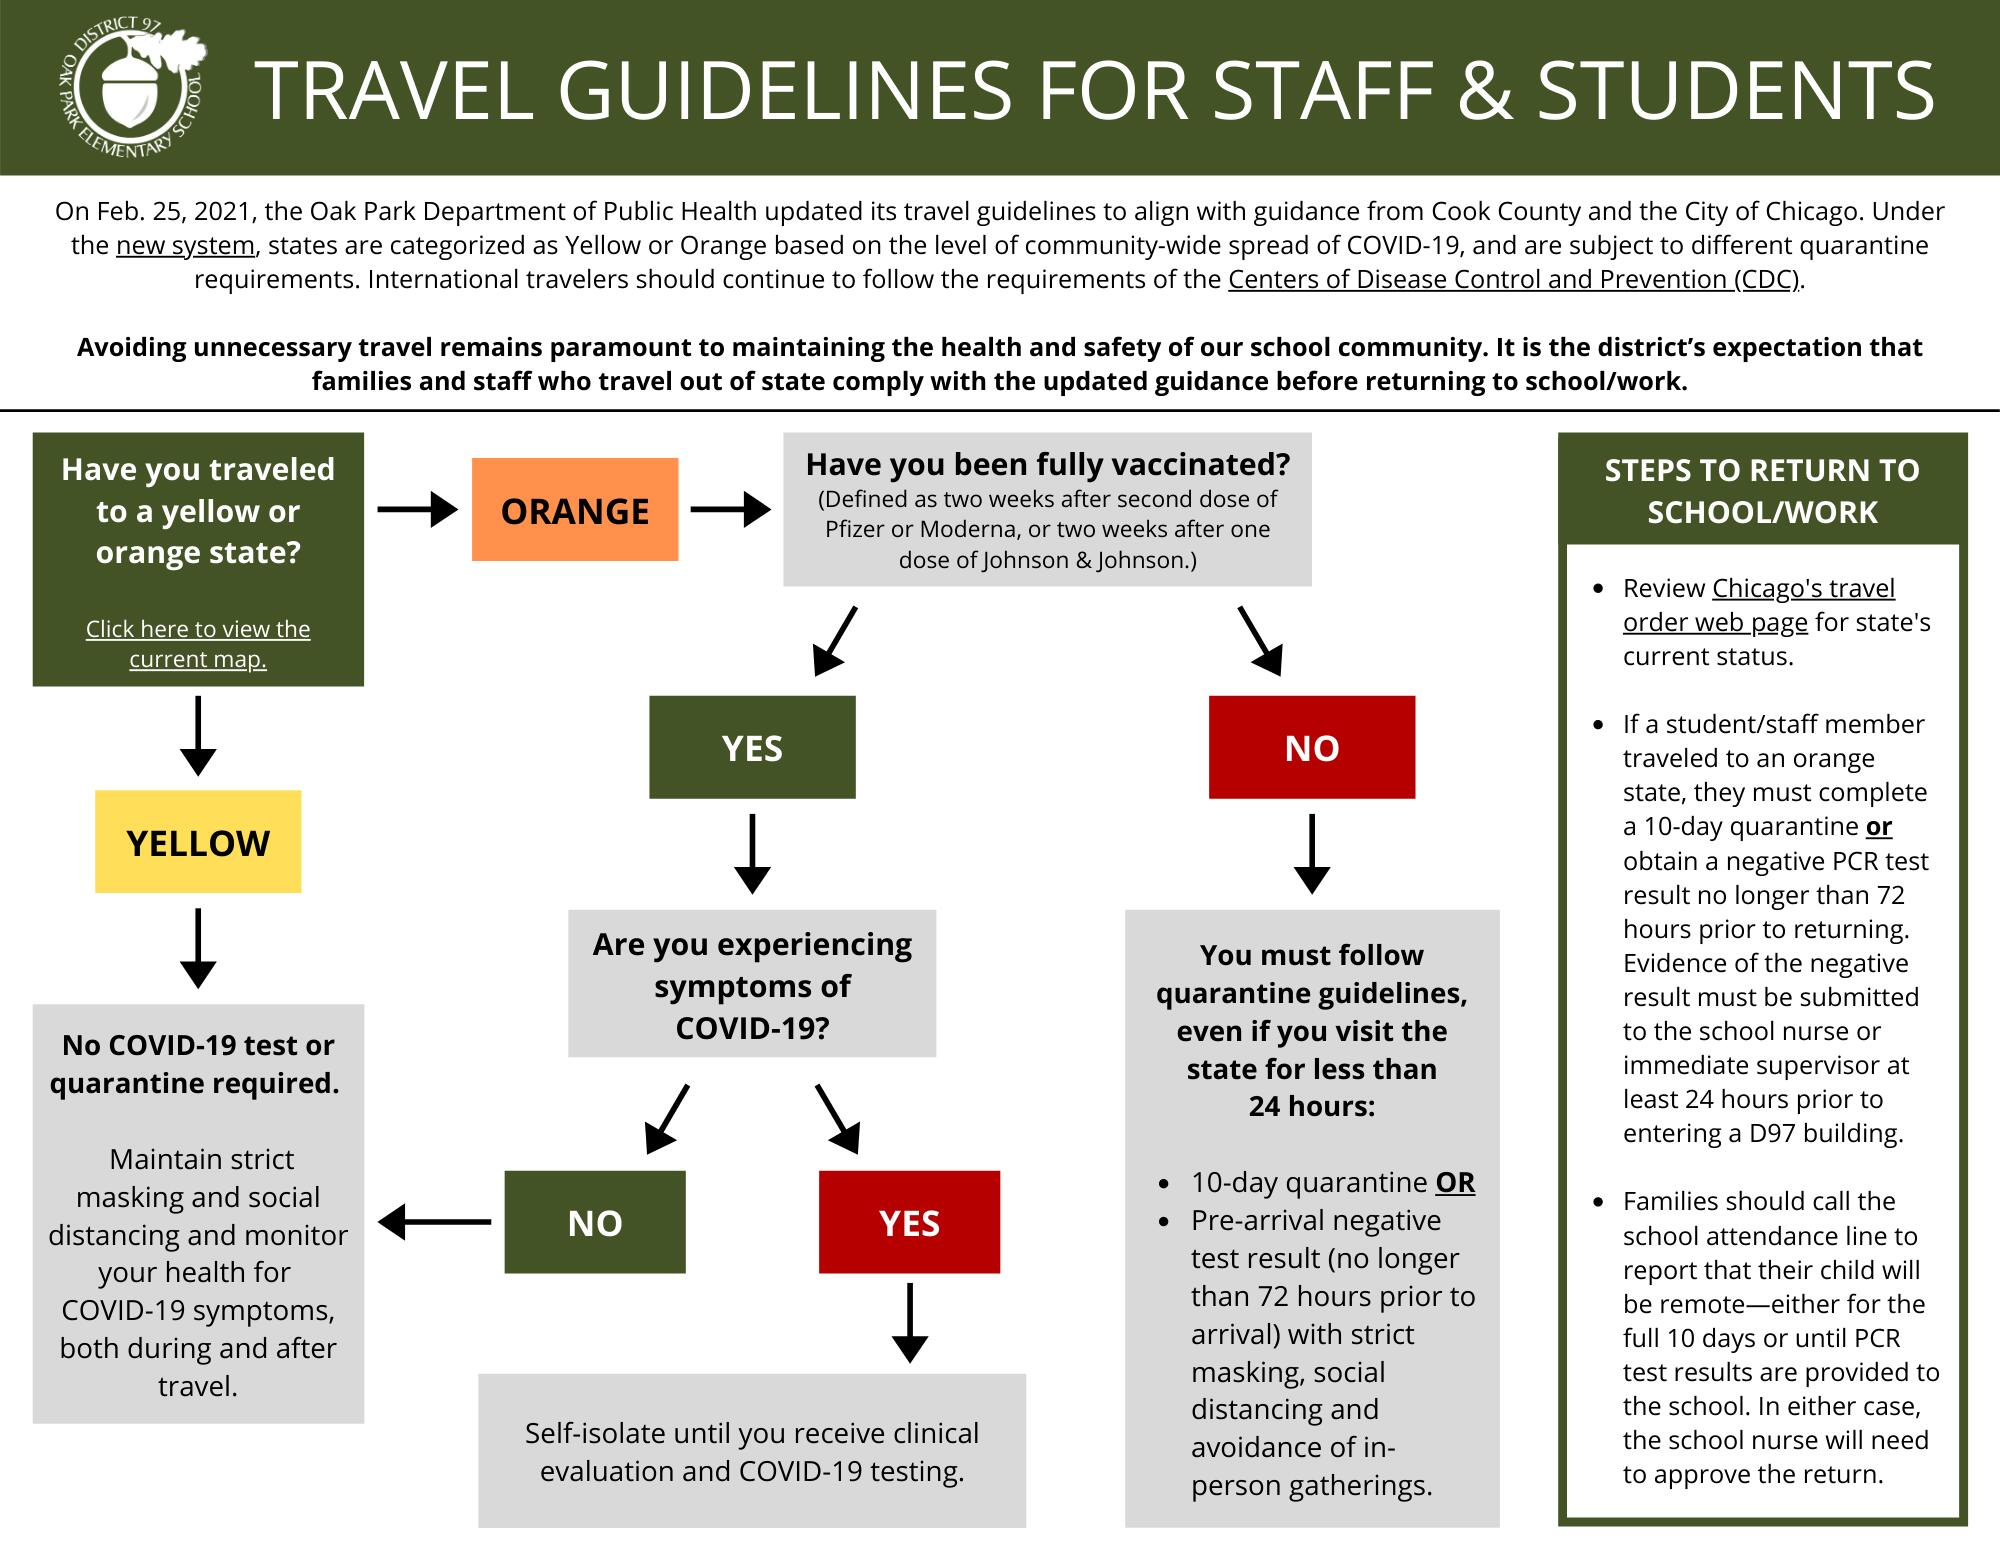 Travel Guidance for D97 Students and Staff (click to view PDF)